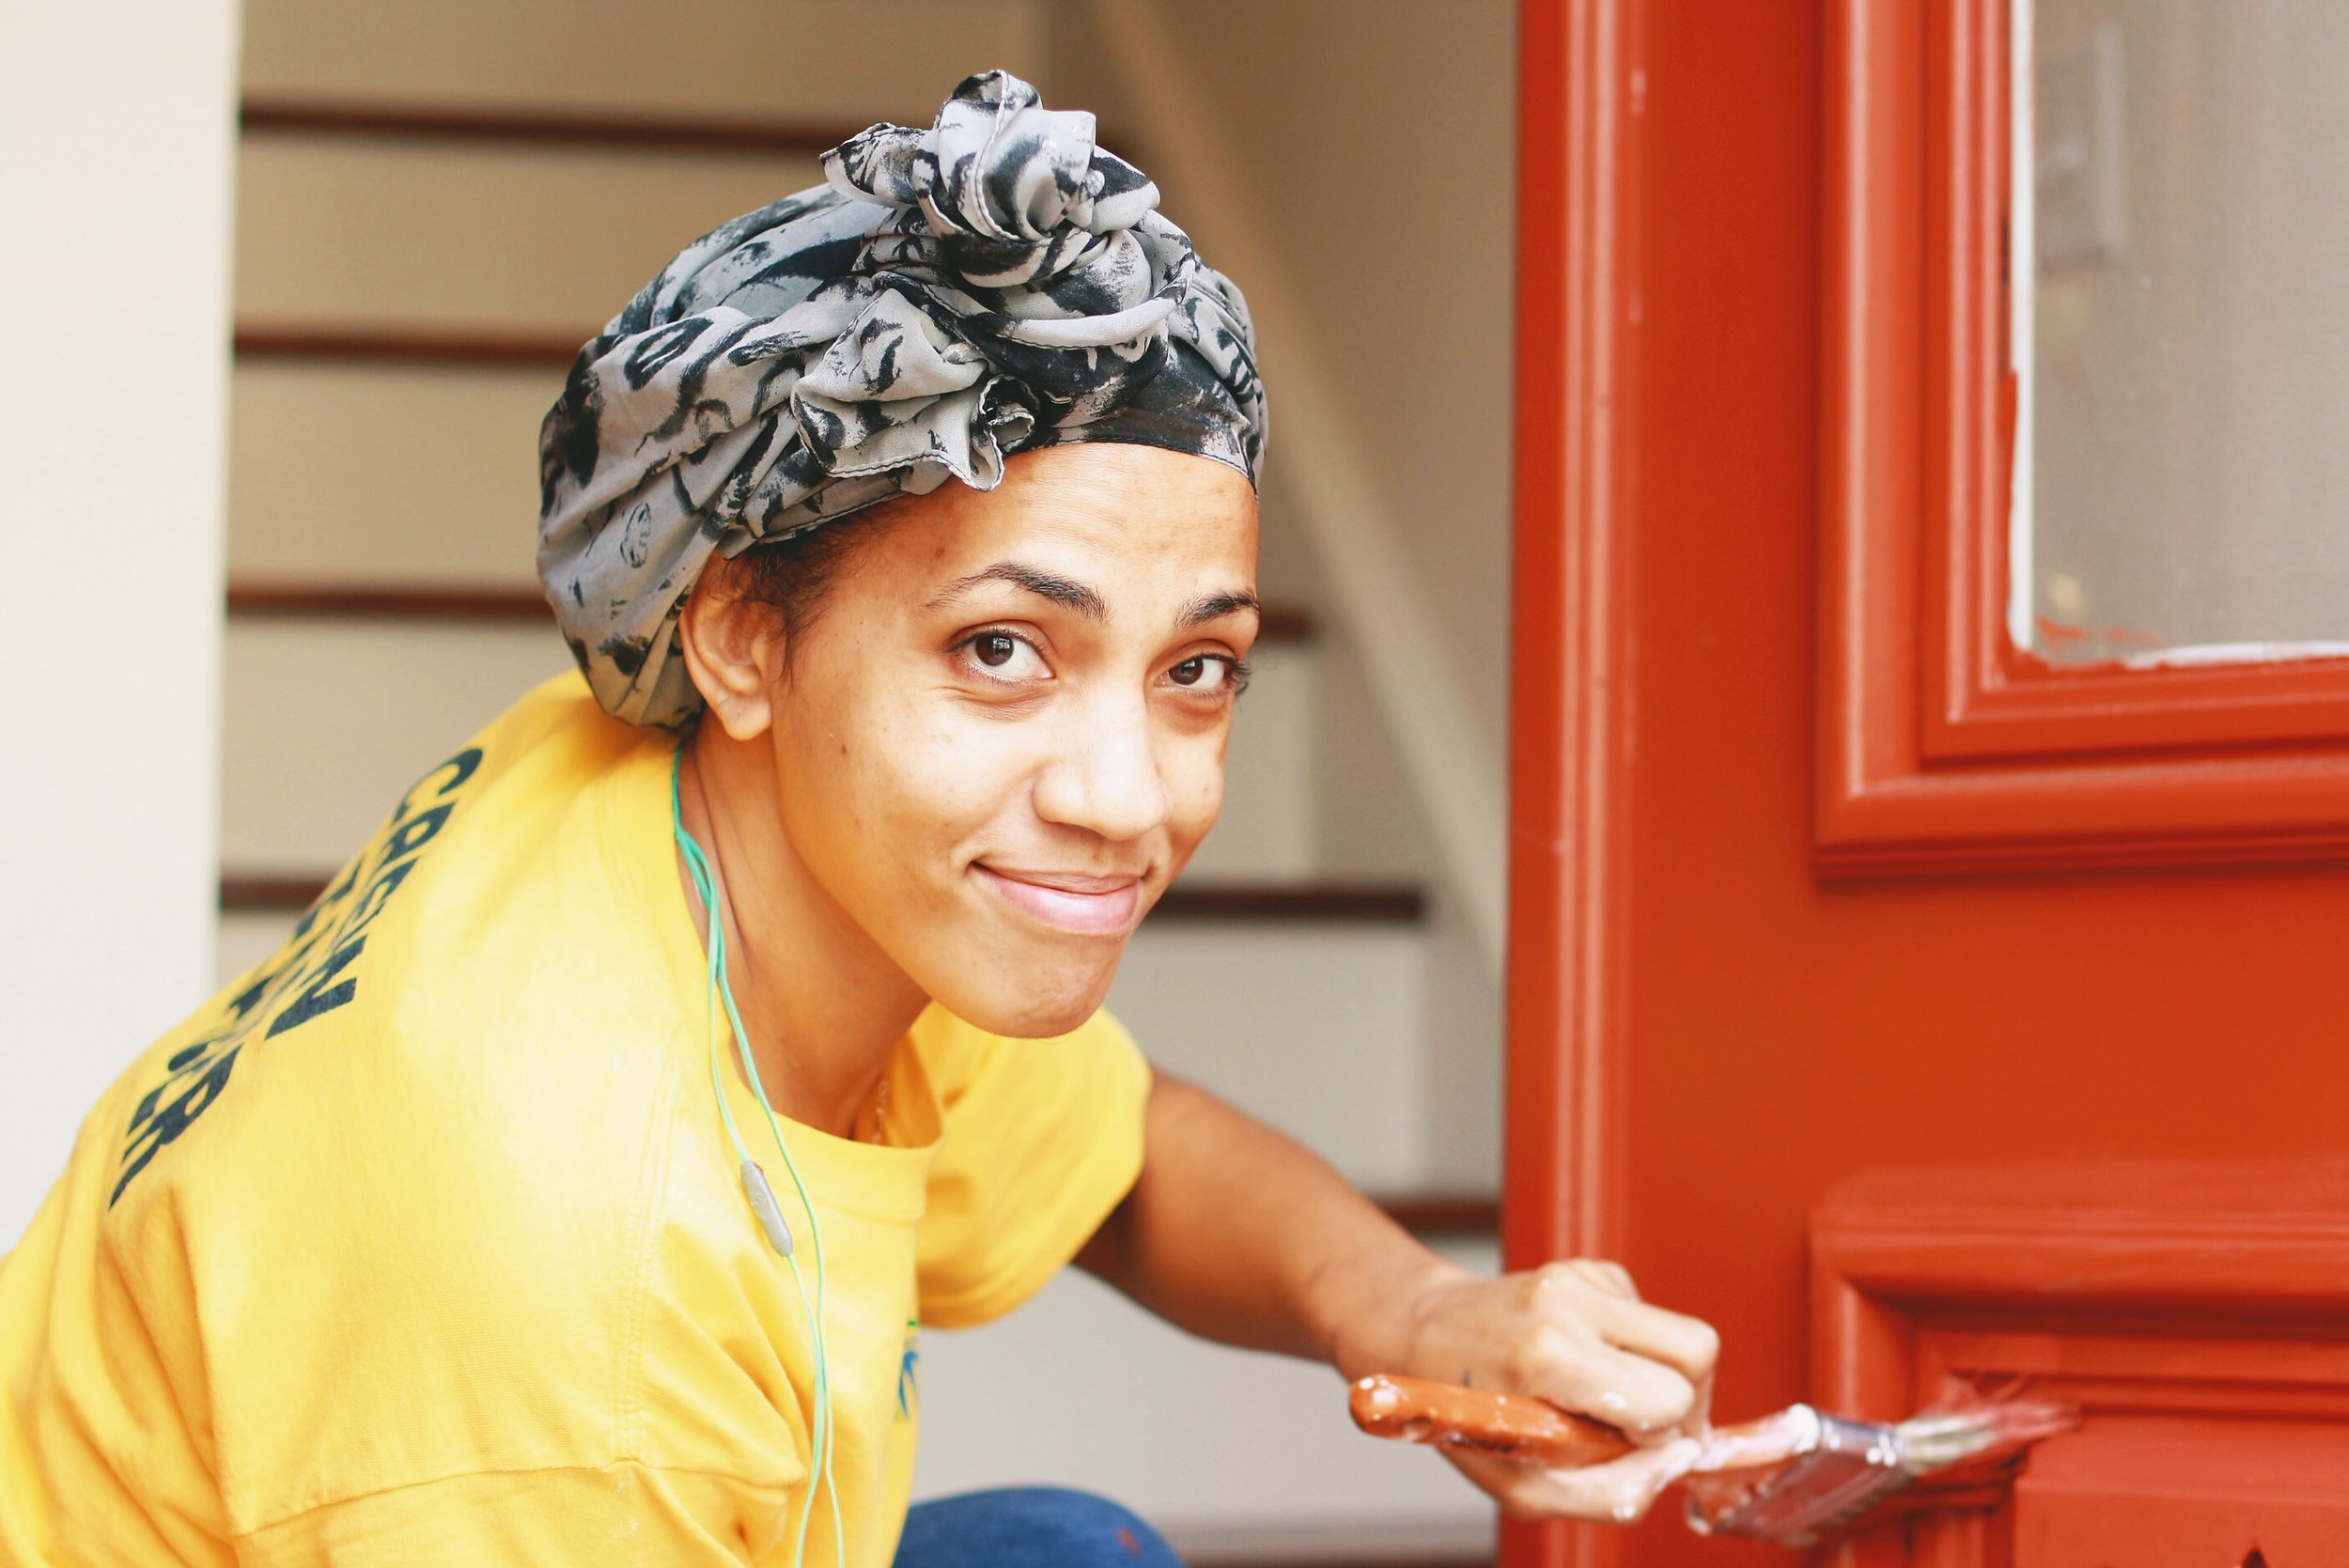 Vanessa painting a door. We love this picture!